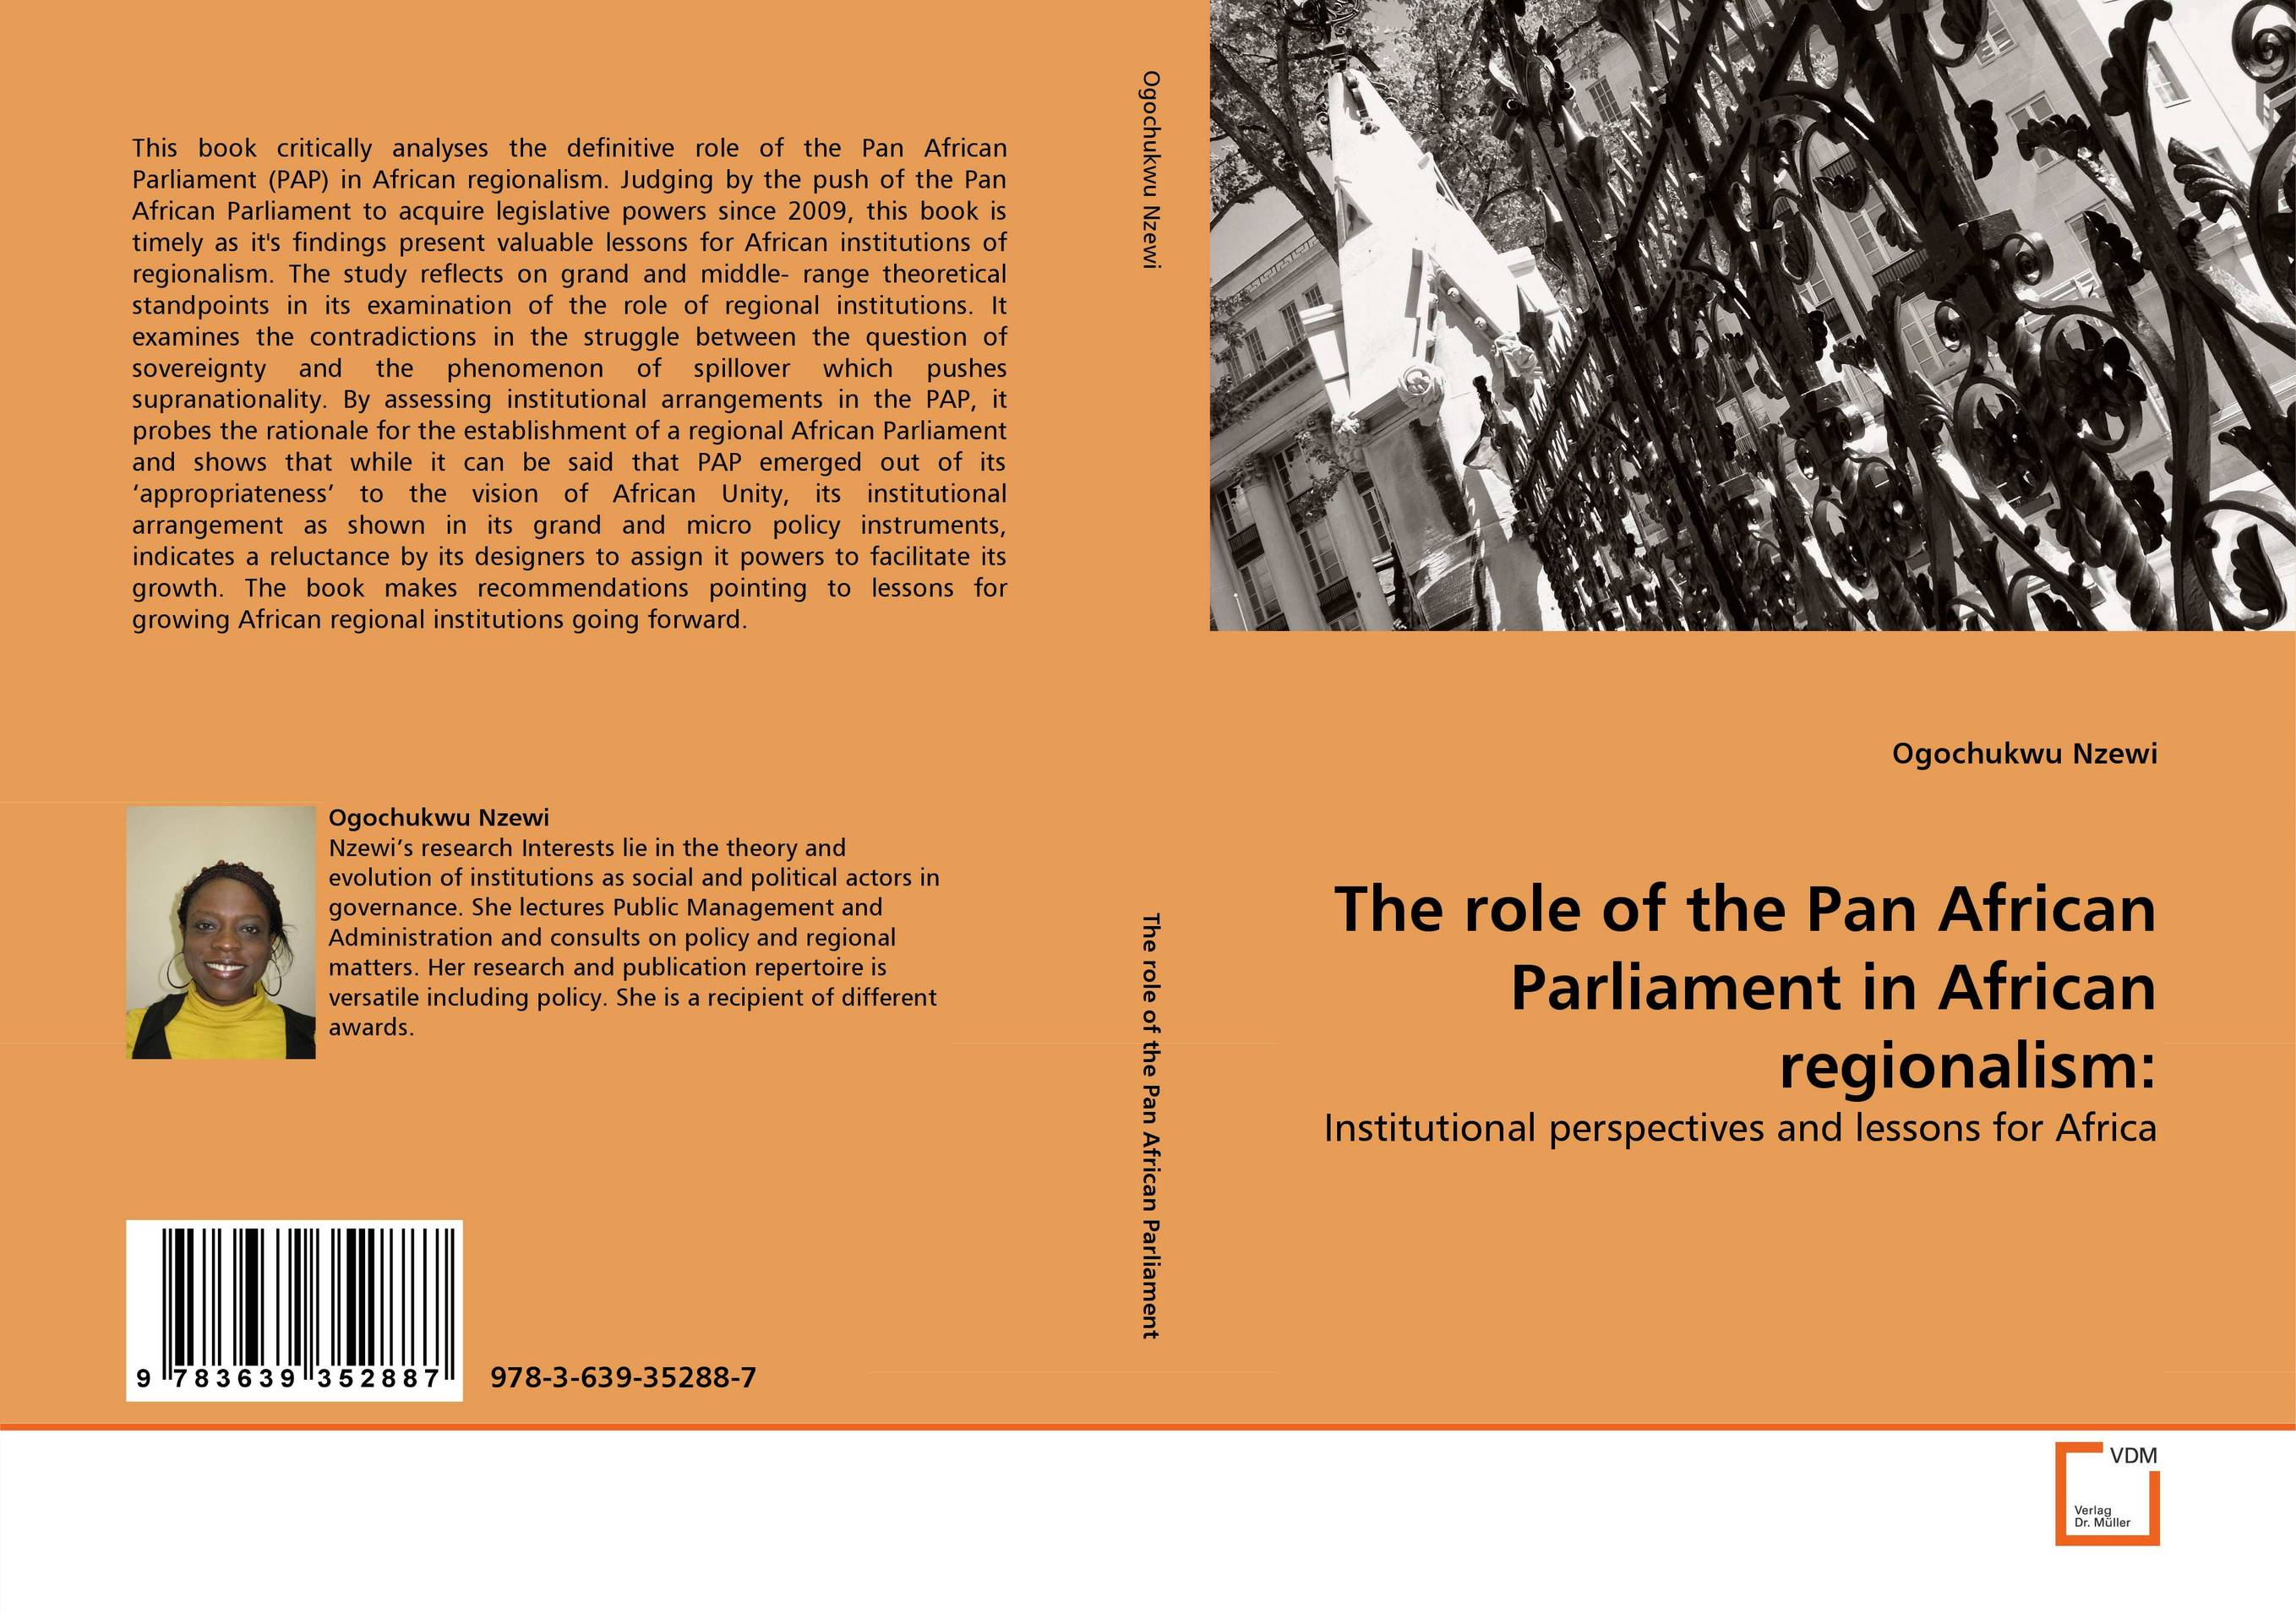 The role of the Pan African Parliament in African regionalism: judging the judges judging ourselves